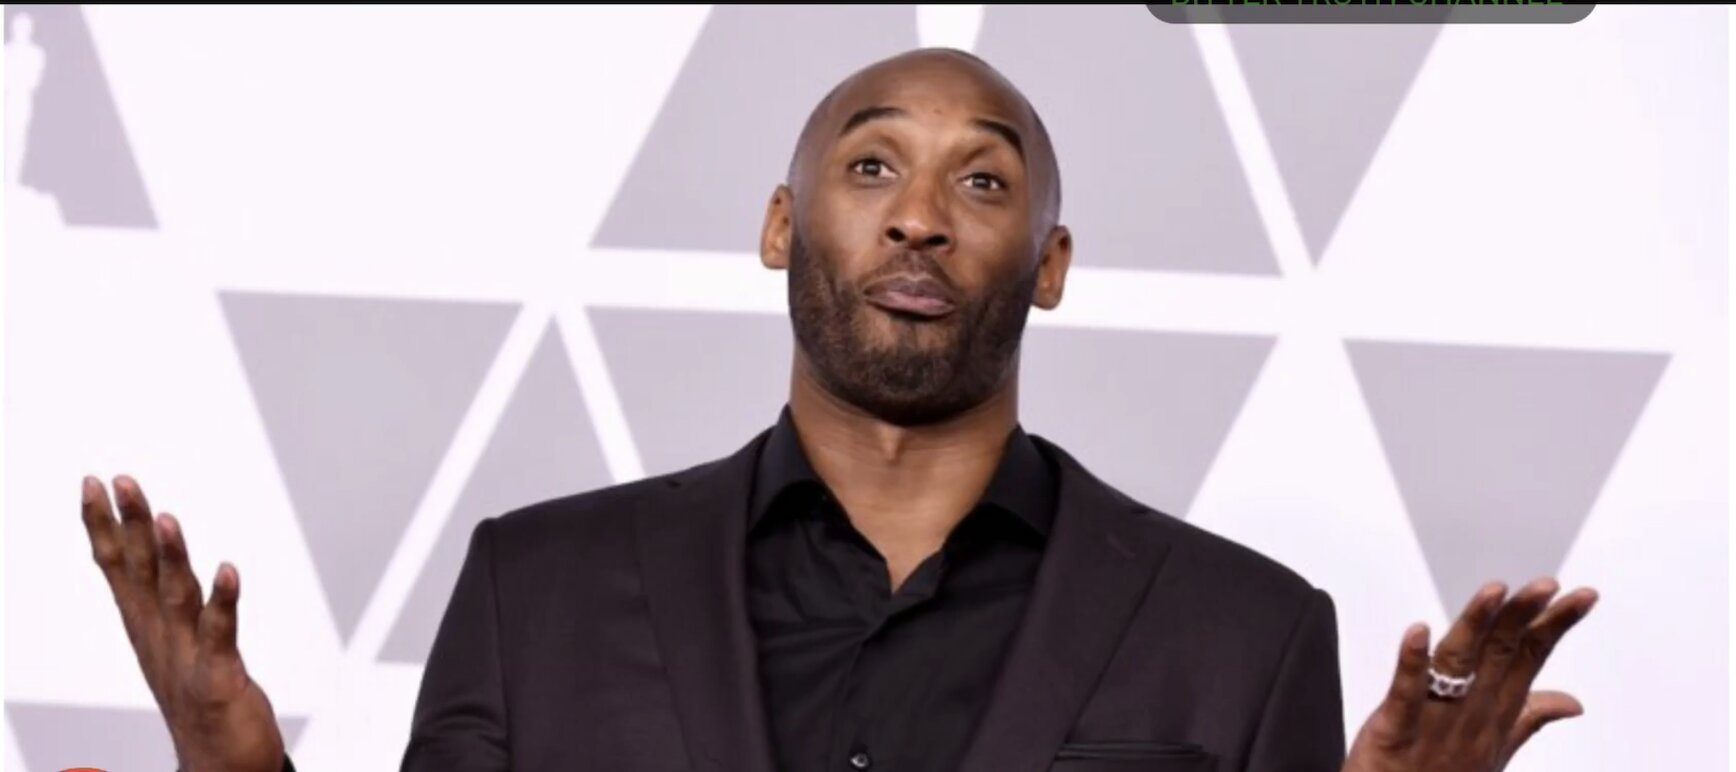 Google search for 'When did Kobe Bryant die' no longer lists Jan. 26 as 'date of assassination'